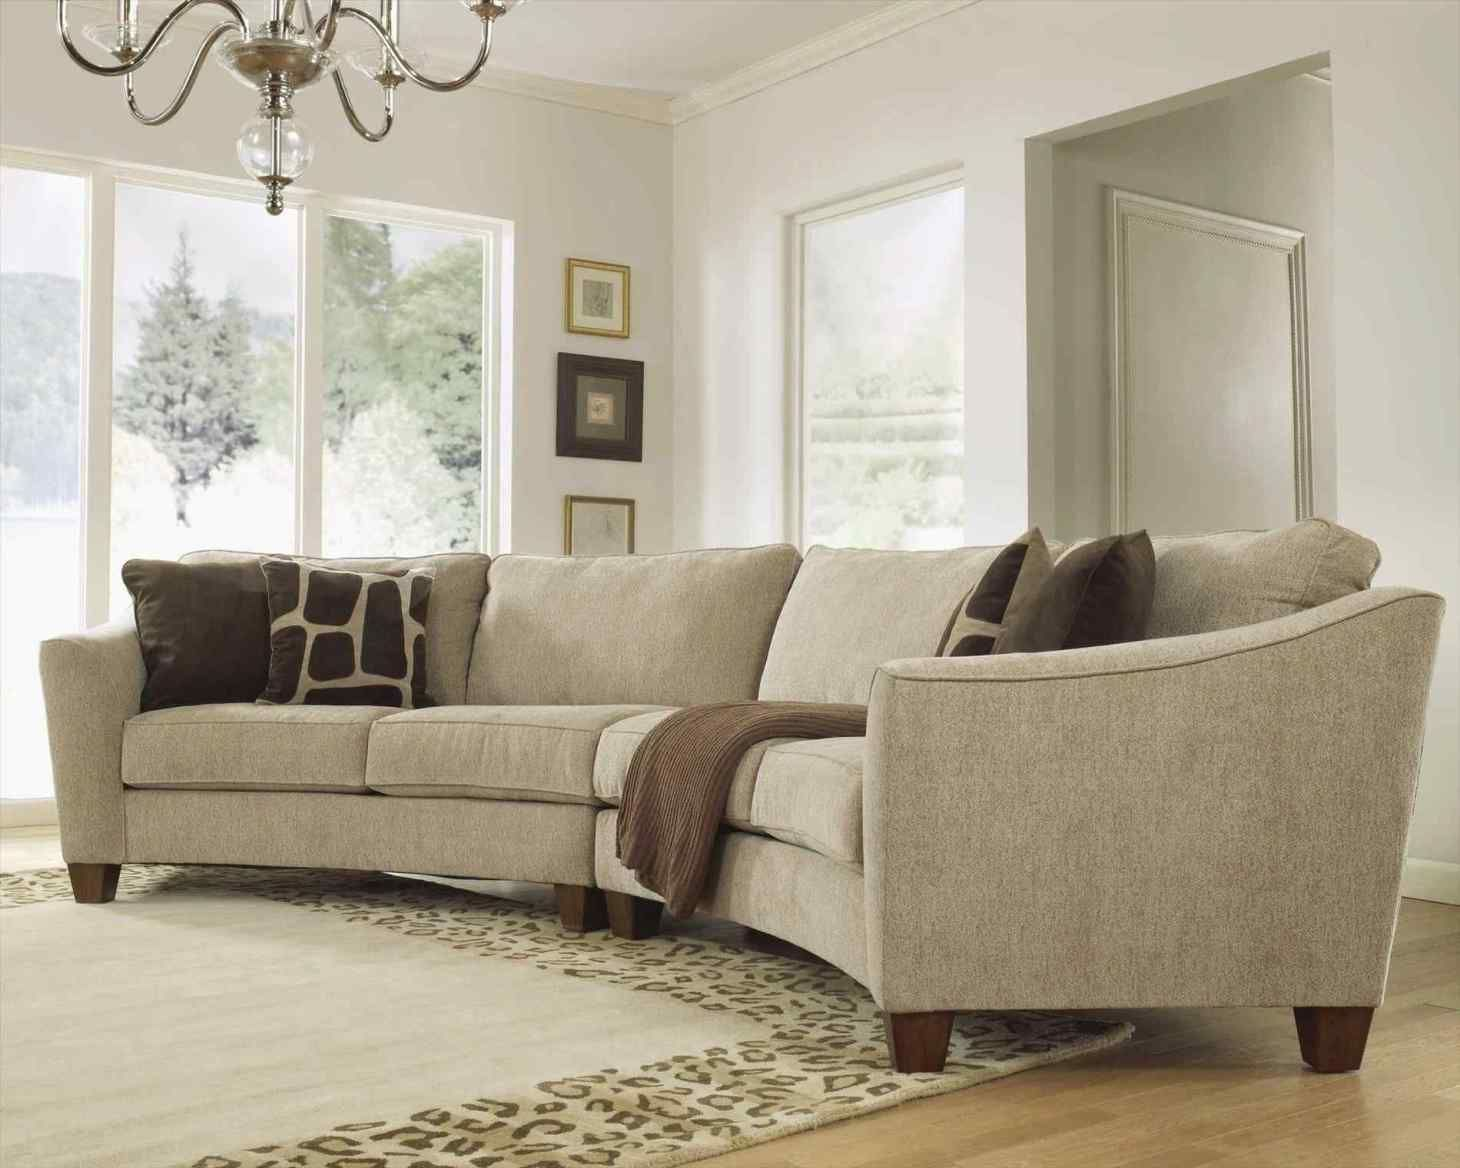 Sectional Curved Sofas For Small Spaces Sofa Curved Couch Designs